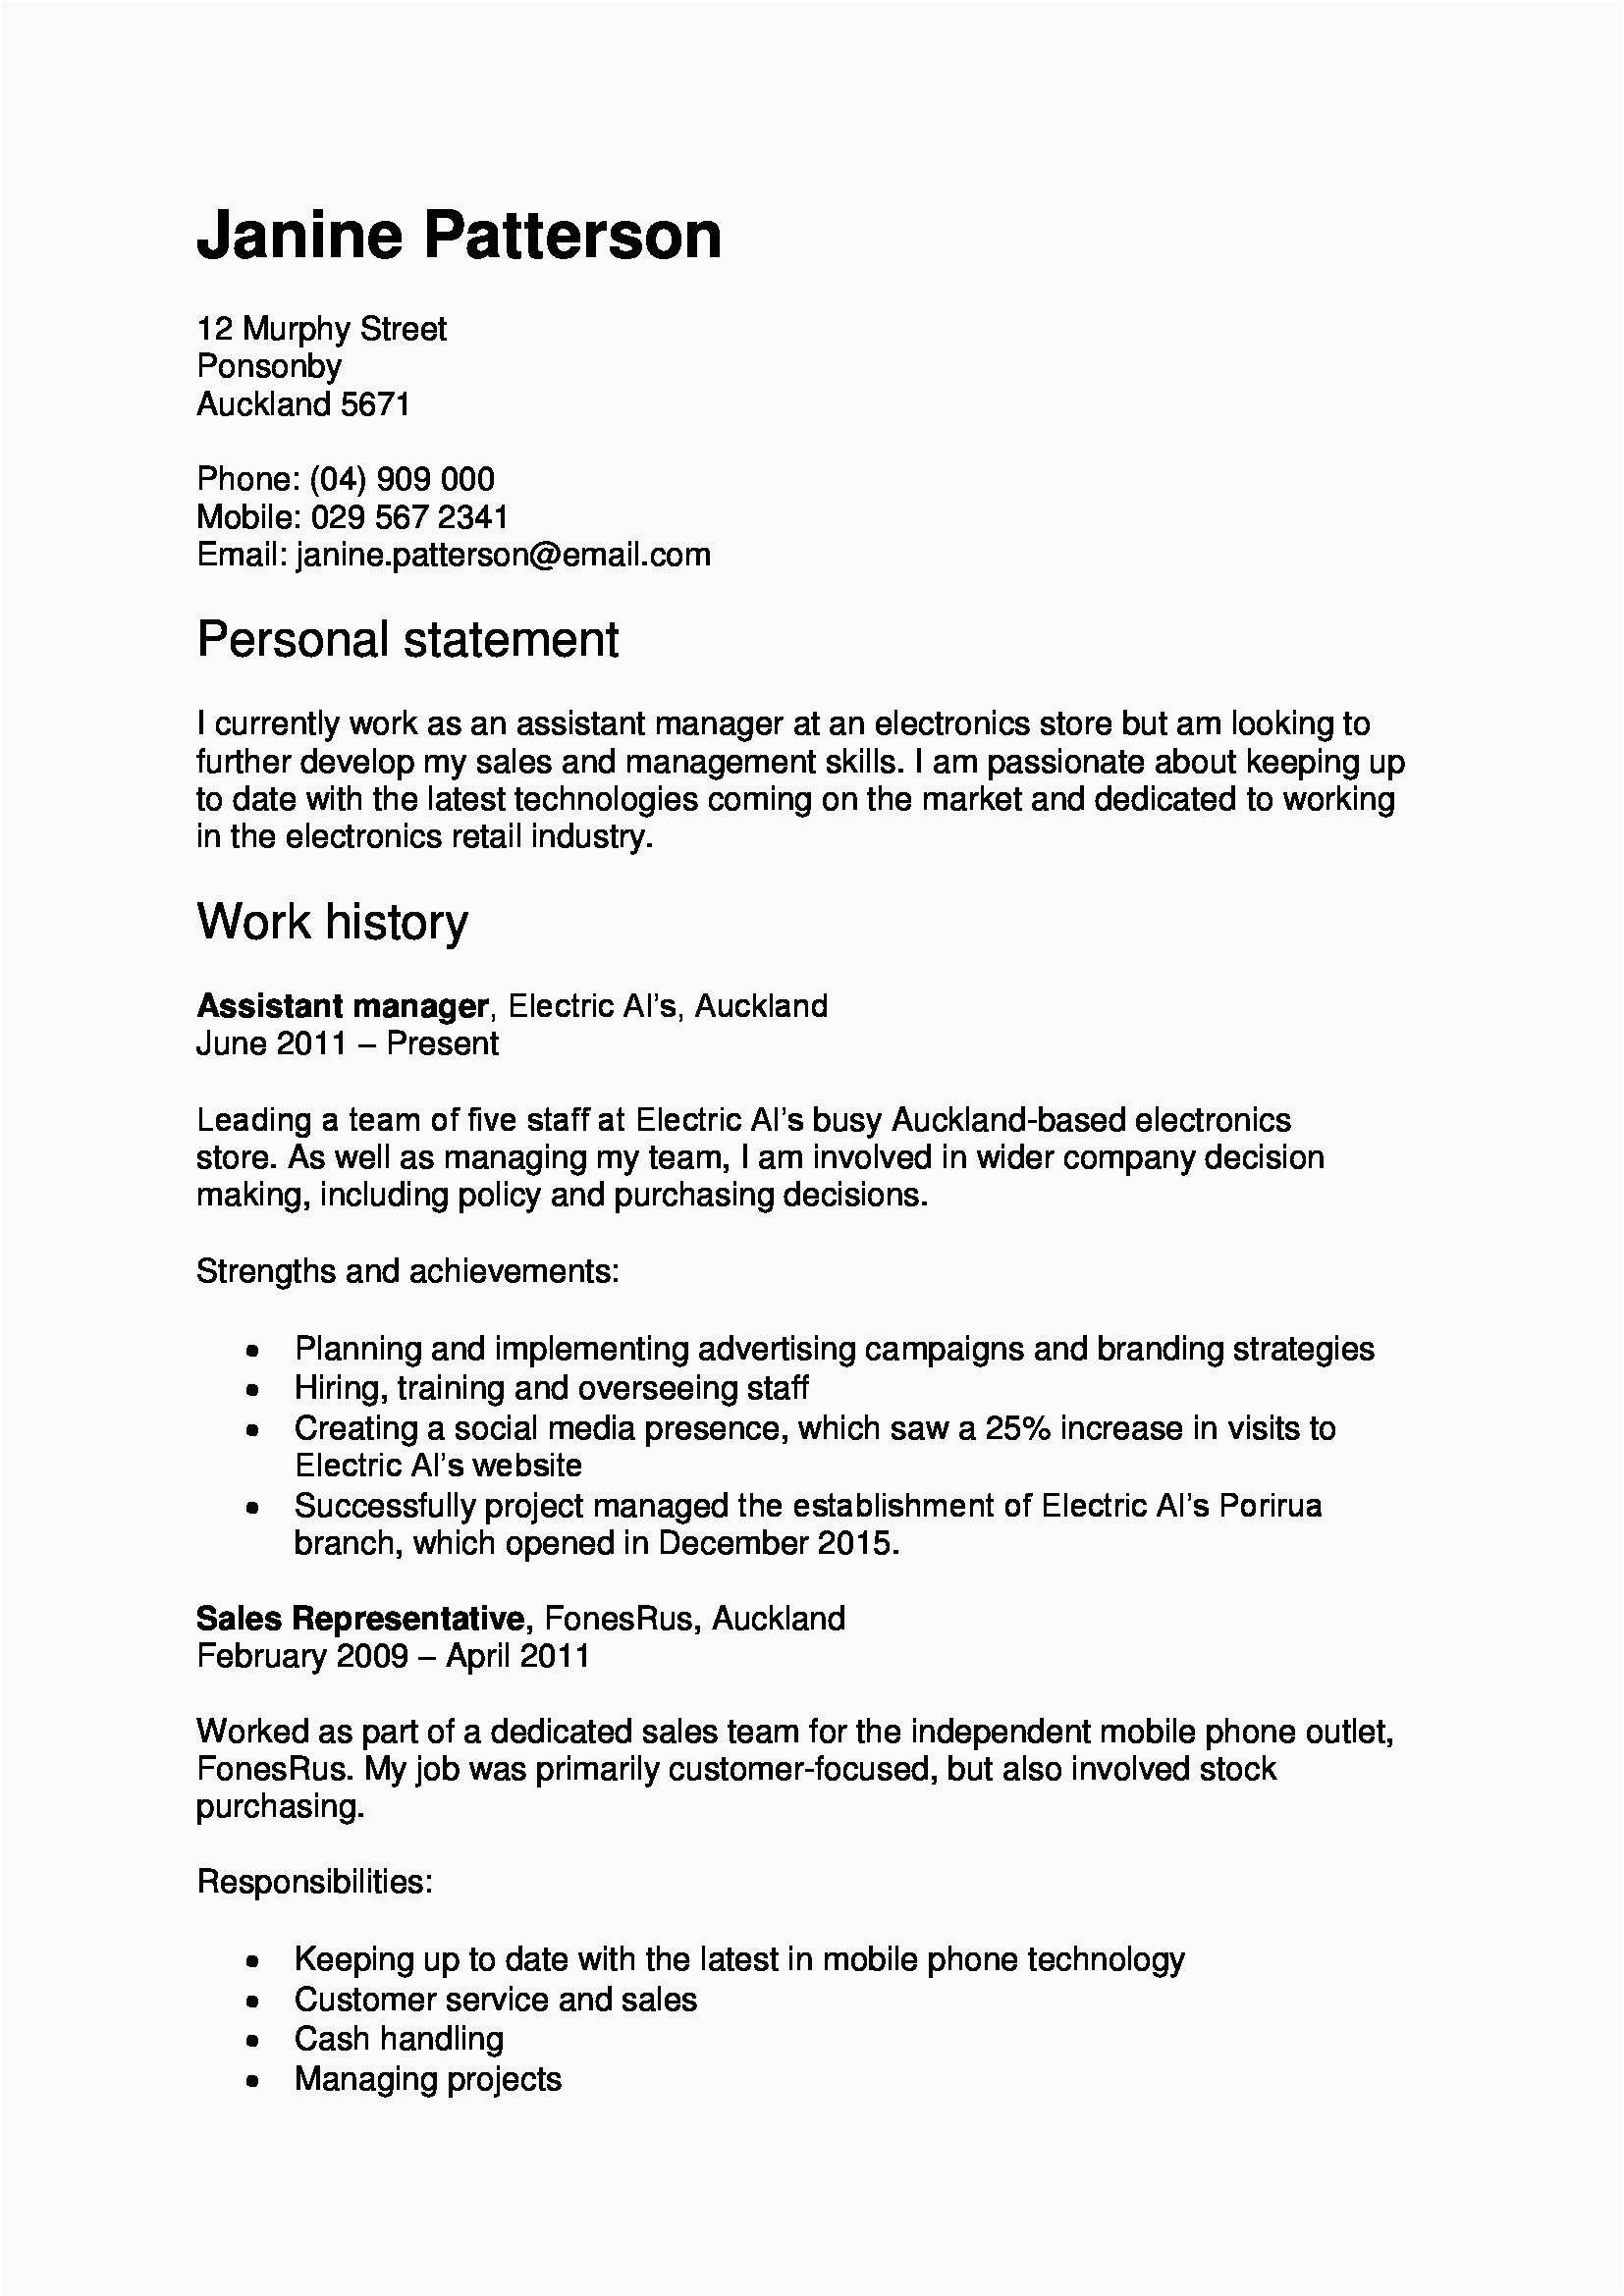 Resume Printing Near Me - 30 Free Electronic Technician Resume Picture